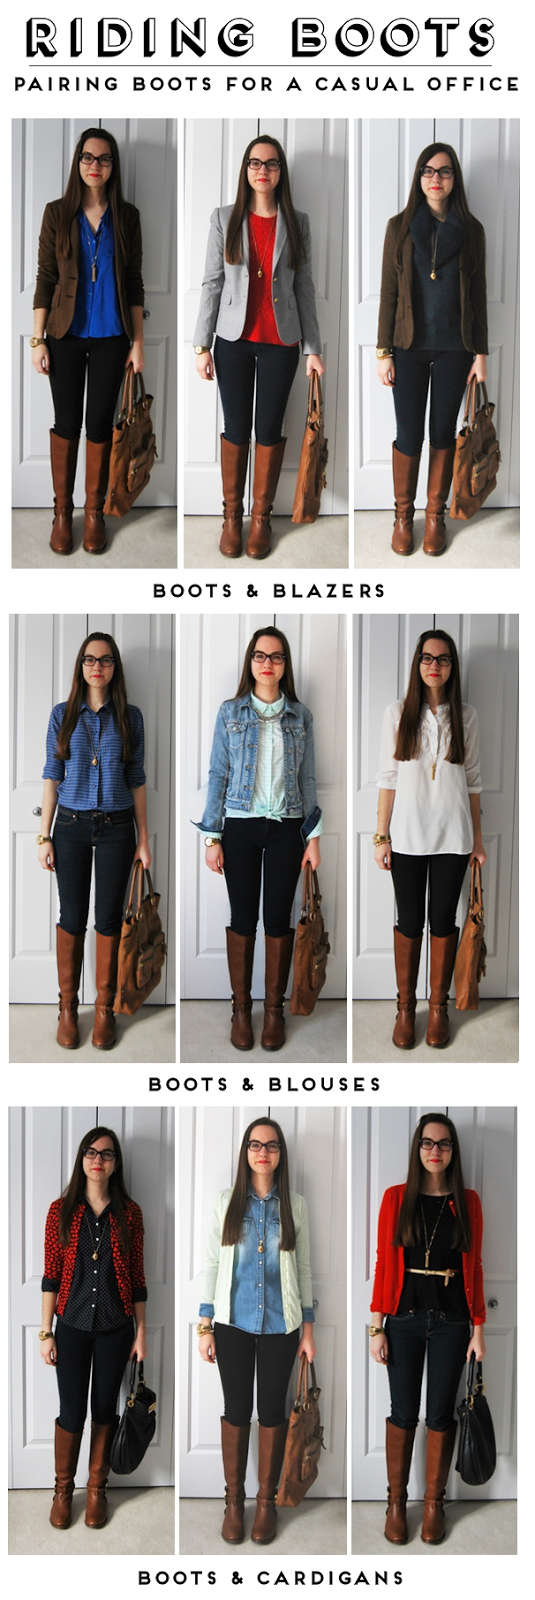 How To Style Riding Boots Pt 2